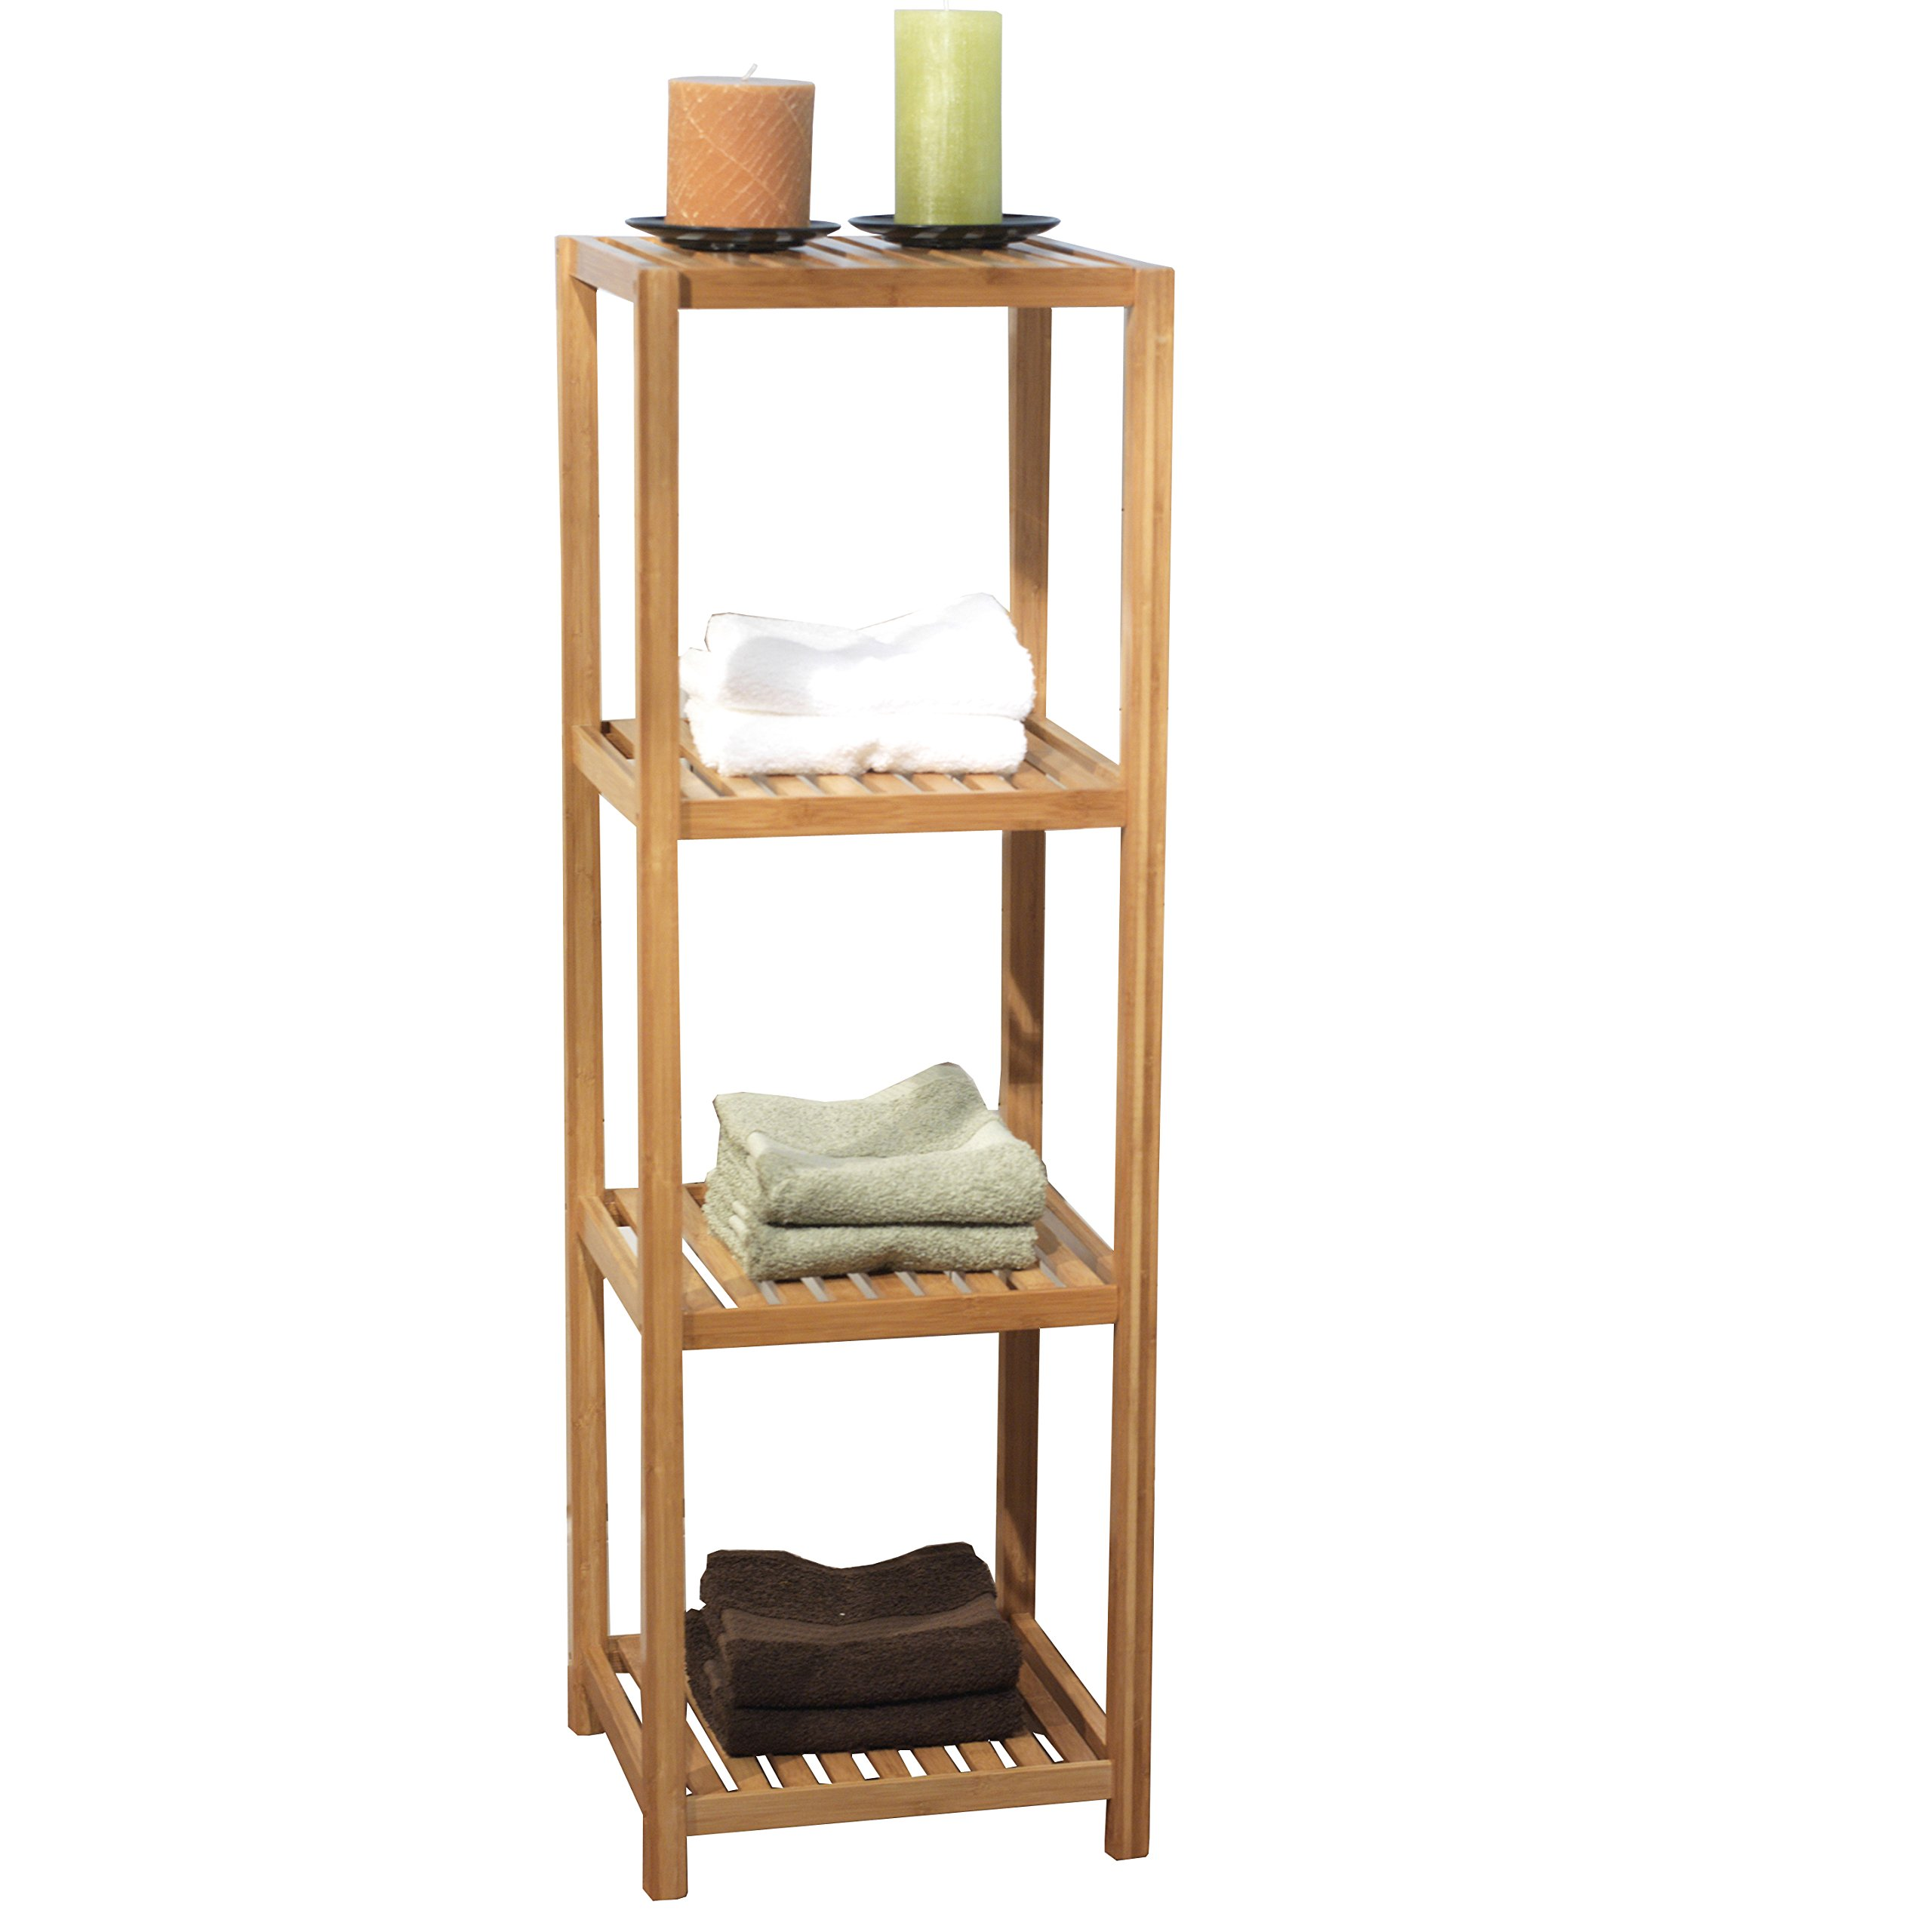 Target Marketing Systems 23034NAT Bamboo 4 Tier Bathroom Shelf, Bamboo